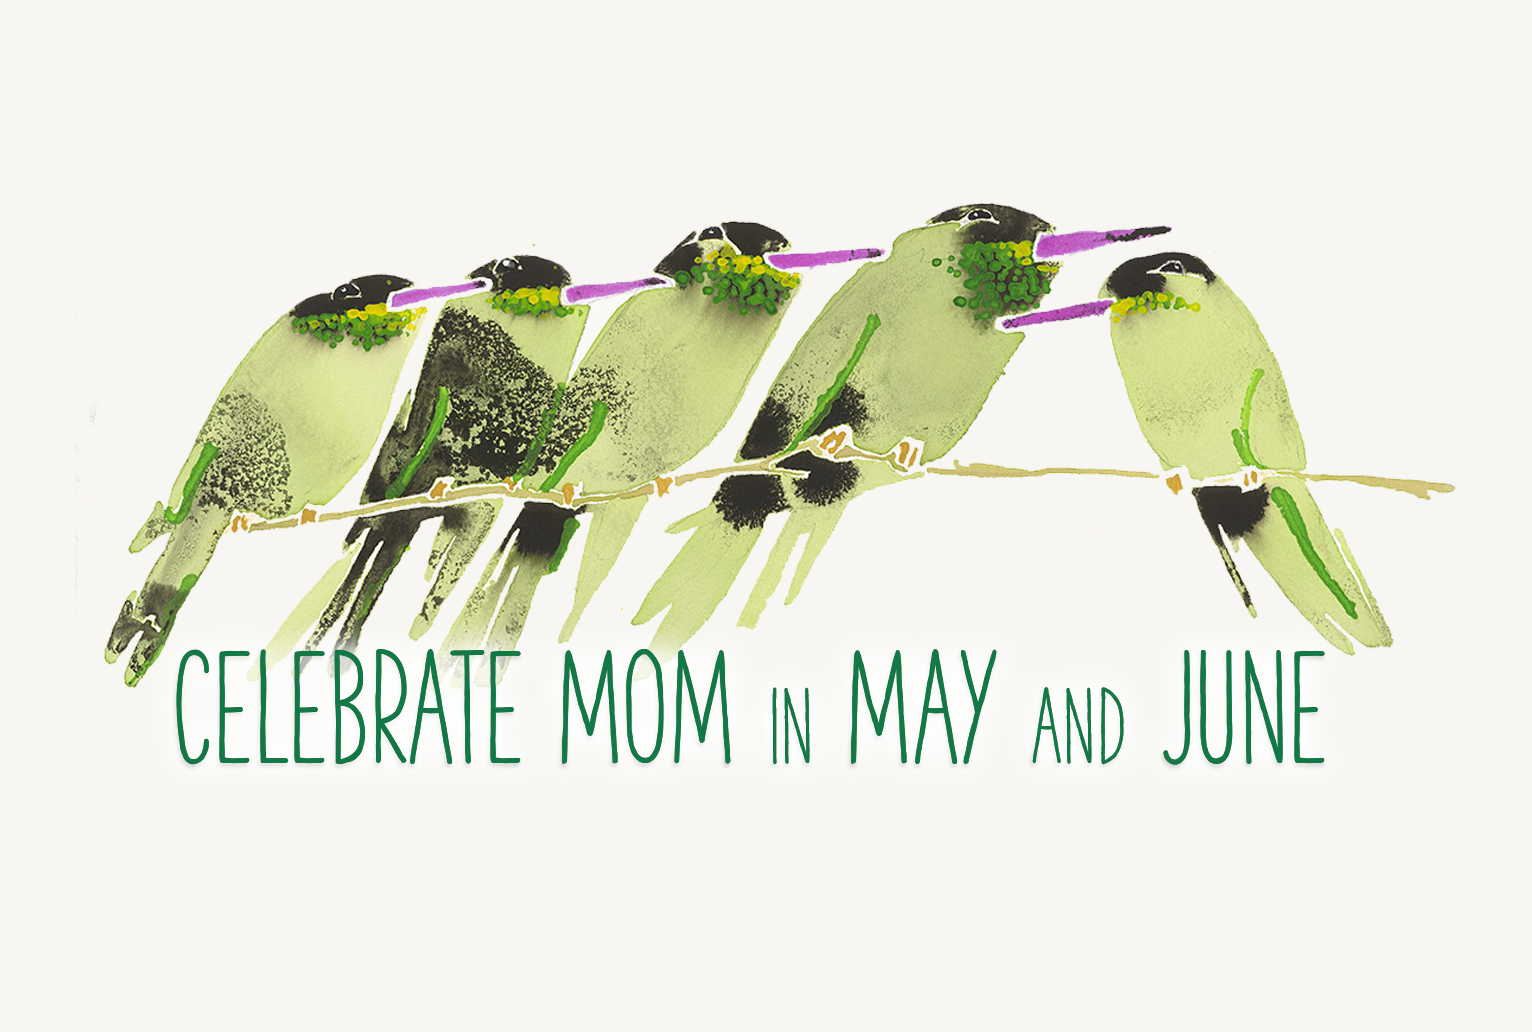 Celebrate Mom in May and June - special deals in Negril, Jamaica